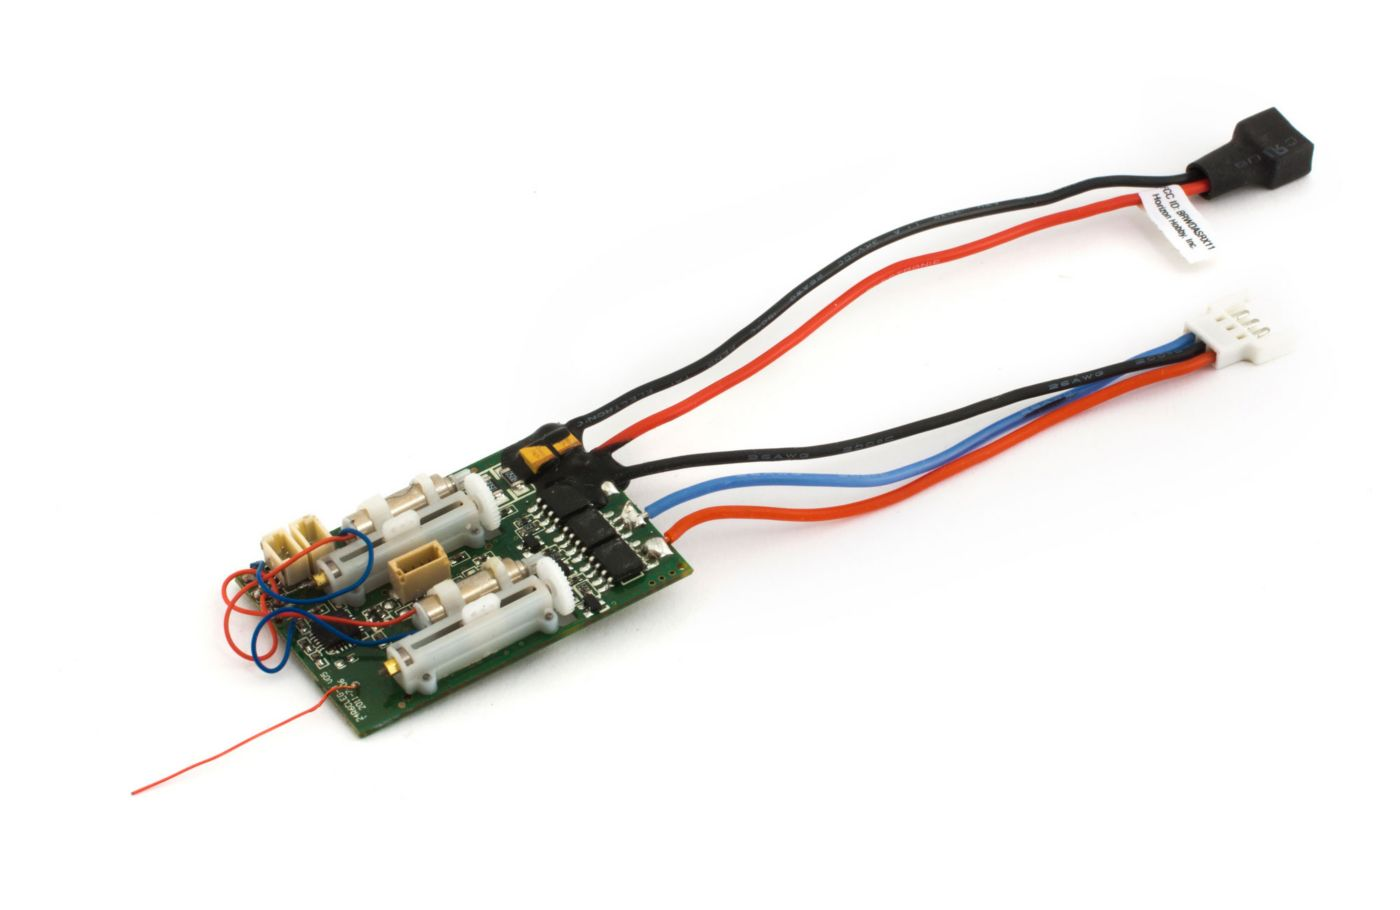 medium resolution of image for dsm2 6 ch ultra micro as3x receiver bl esc from horizonhobby